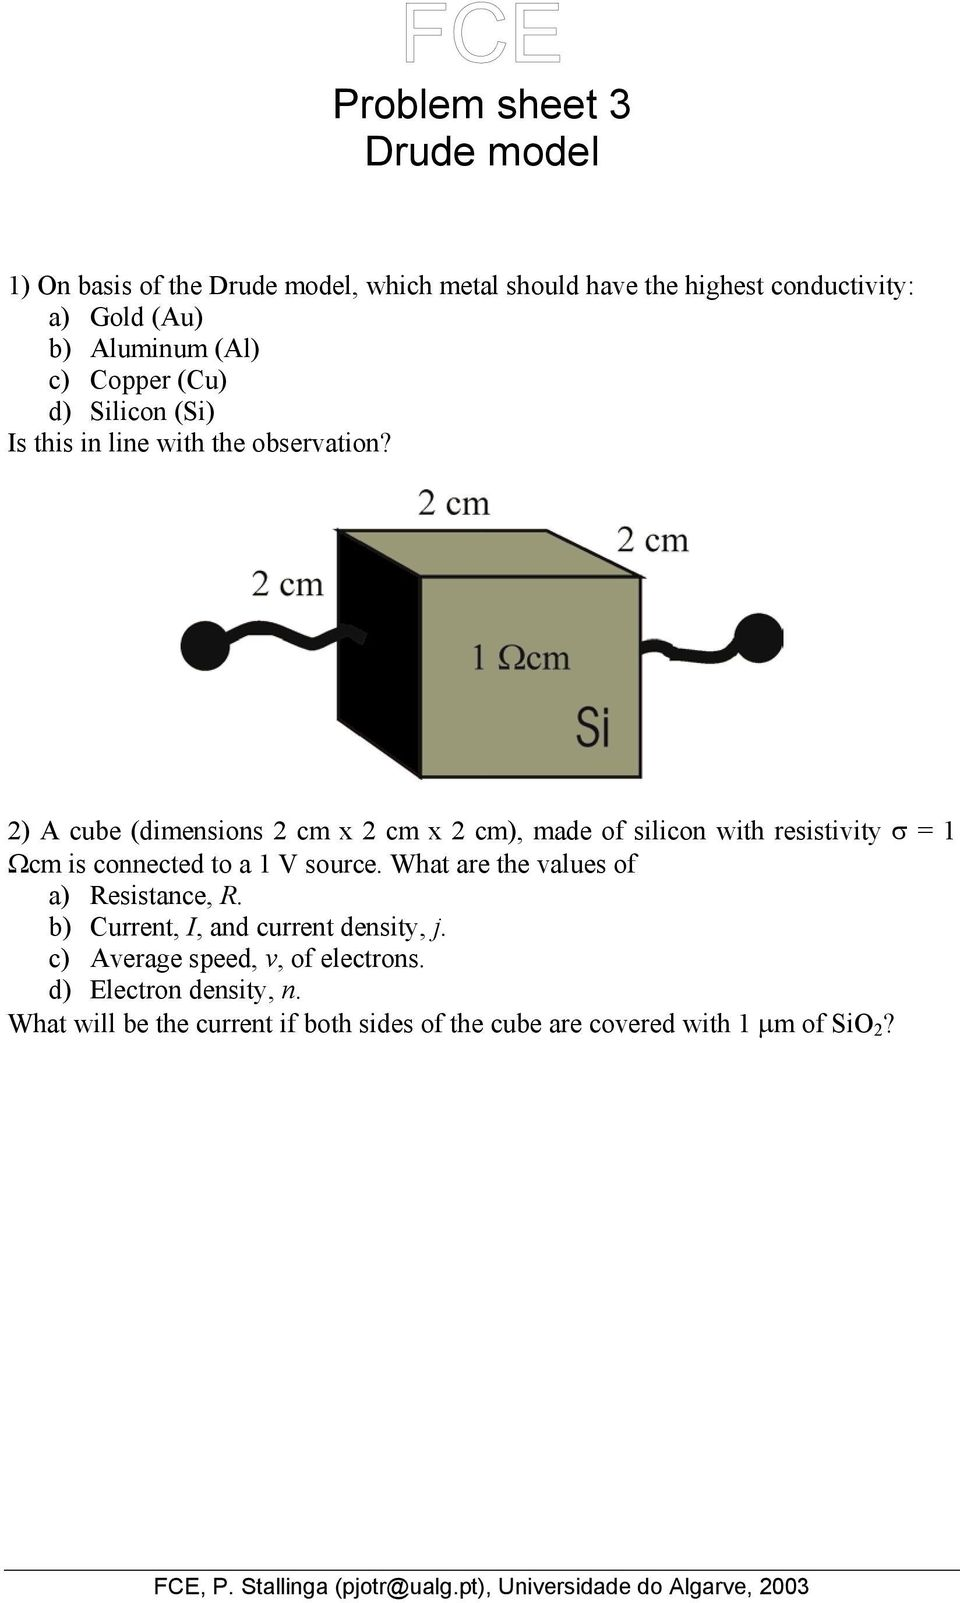 2) A cube (dimensions 2 cm x 2 cm x 2 cm), made of silicon with resistivity σ = 1 Ωcm is connected to a 1 V source.